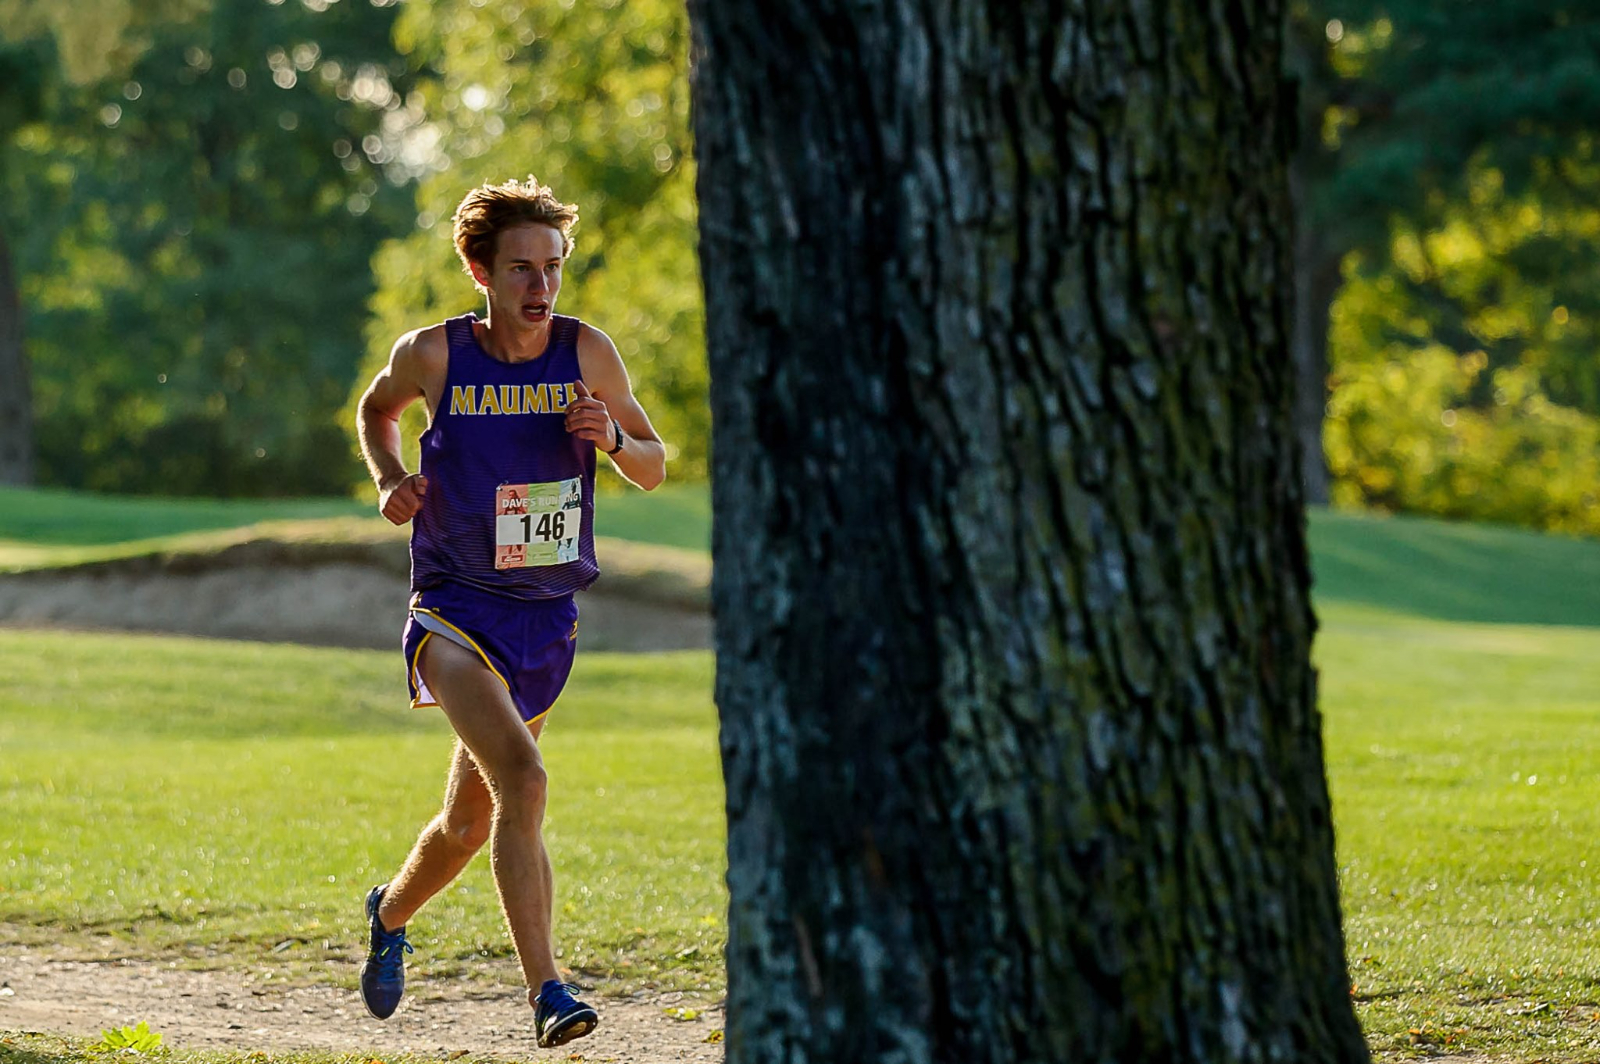 Eric Board places in the top ten at the Dave's Cross Country Invitational